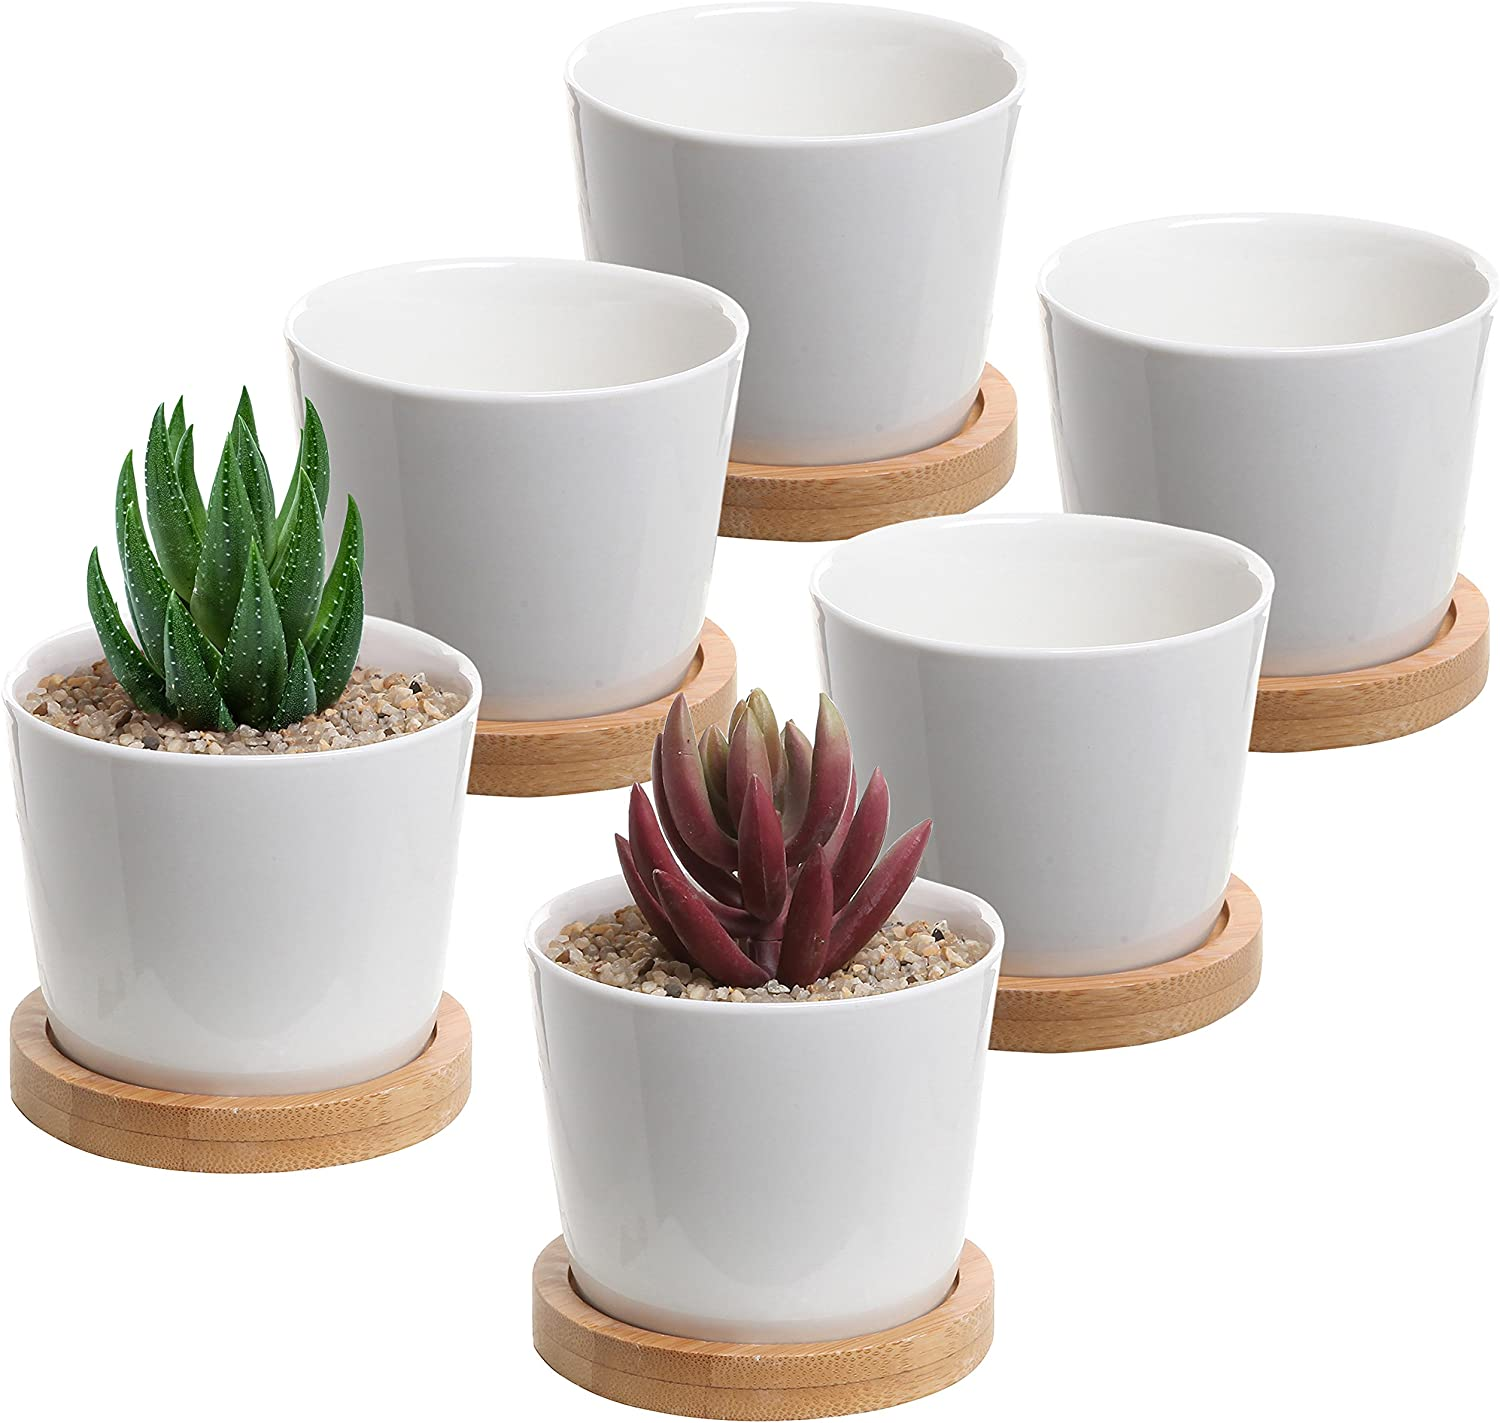 MyGift 3-Inch White Ceramic Mini Planter Cups with Bamboo Saucers, Set of 6